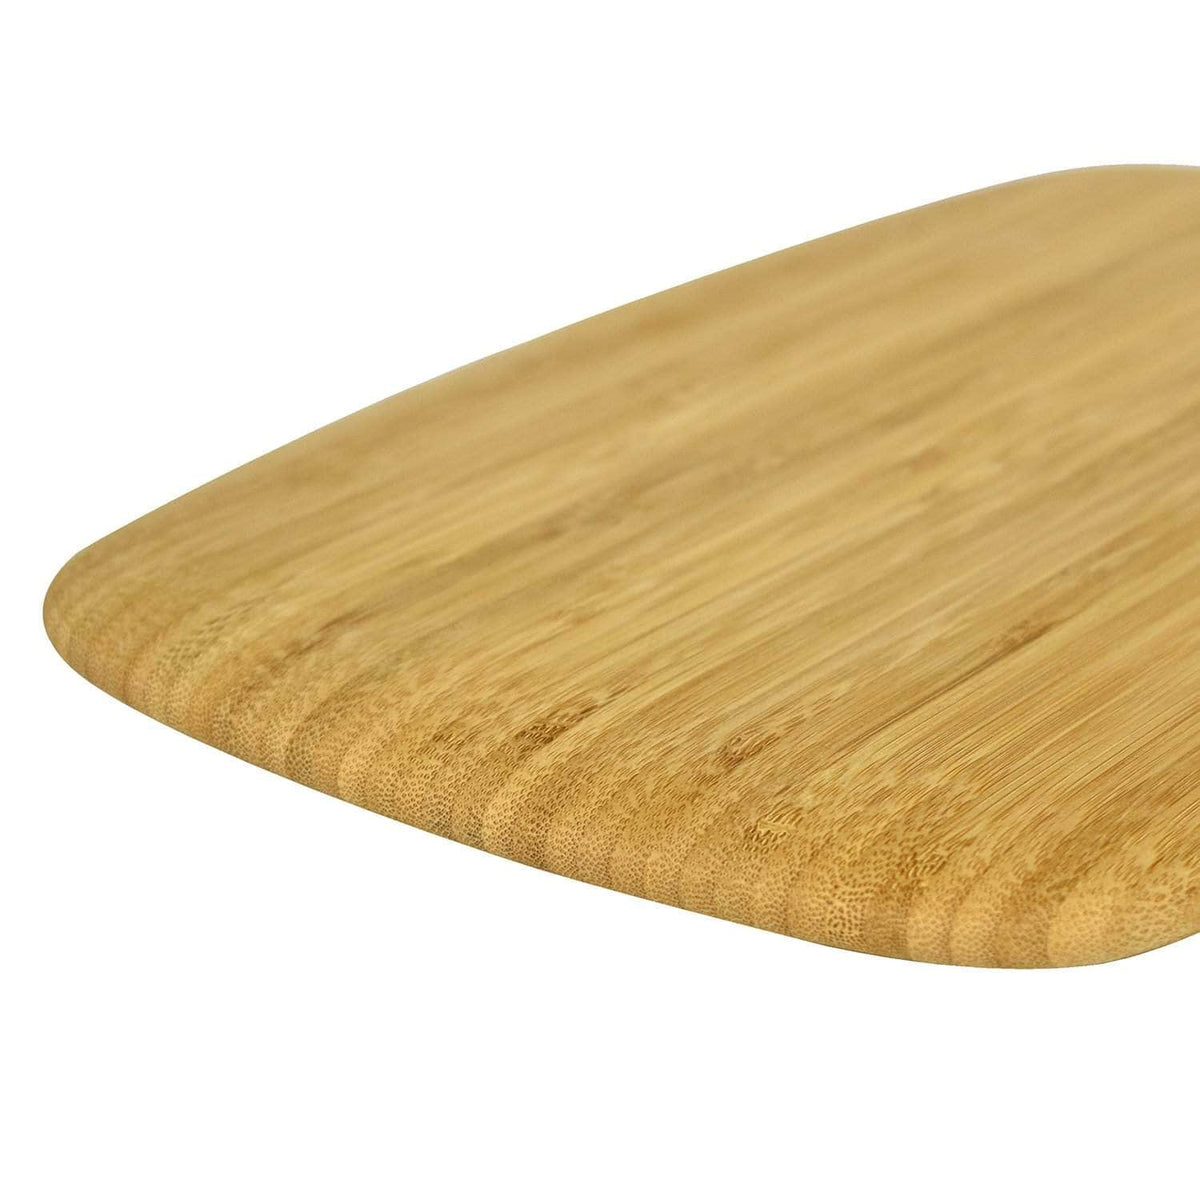 *NEW* Classic bamboo cutting & serving boards